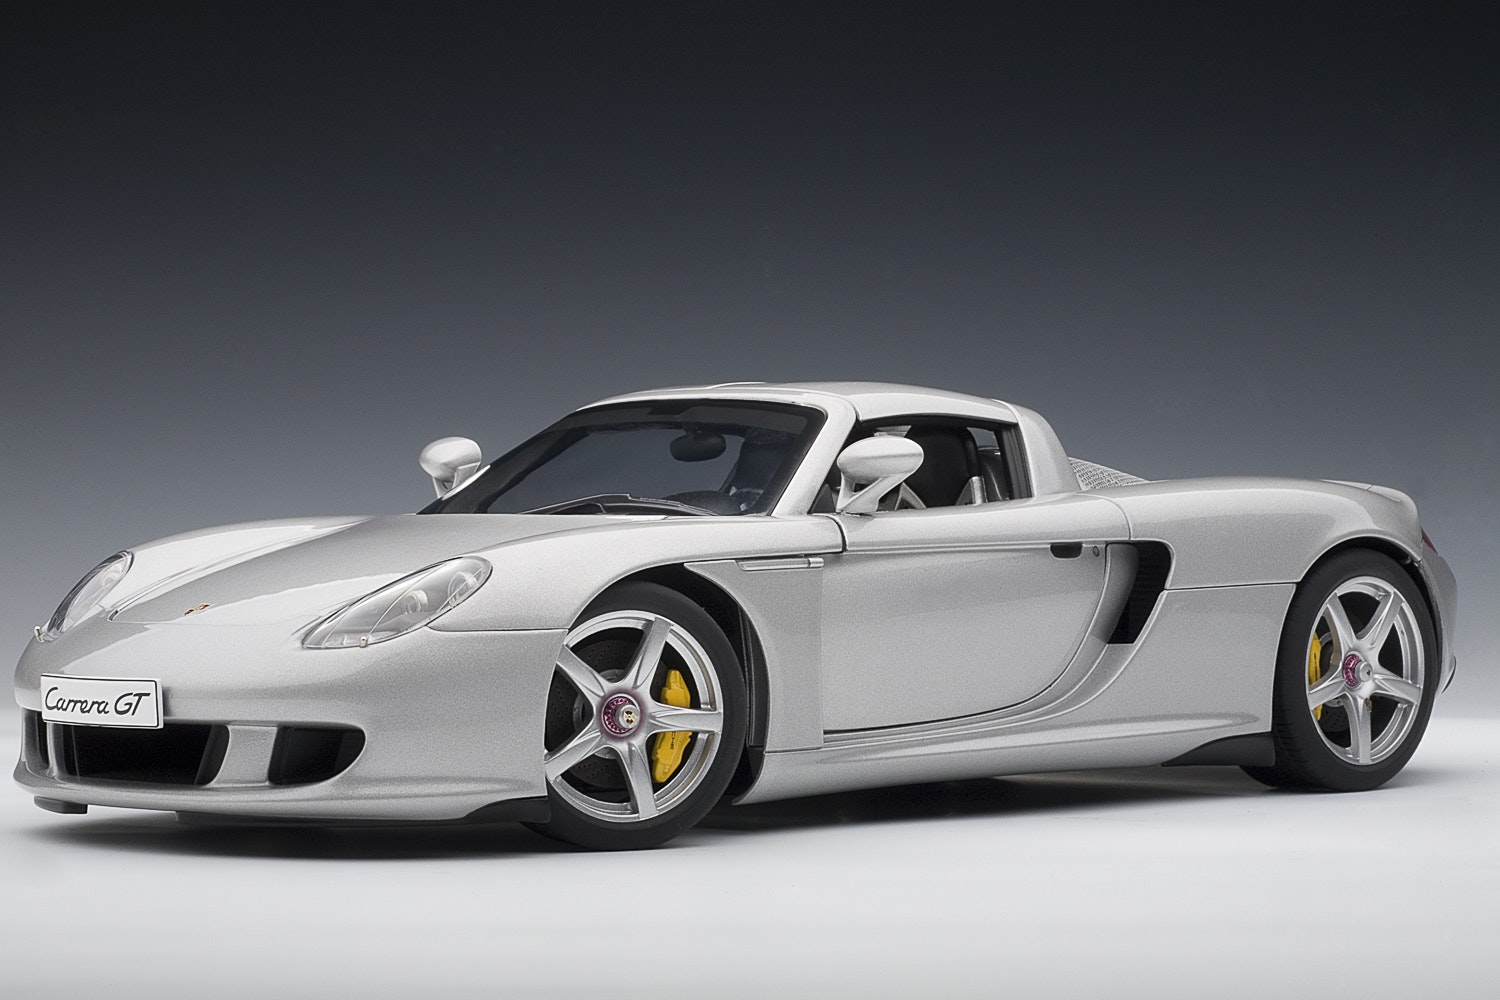 Porsche Carrera GT, Silver with Black Interior